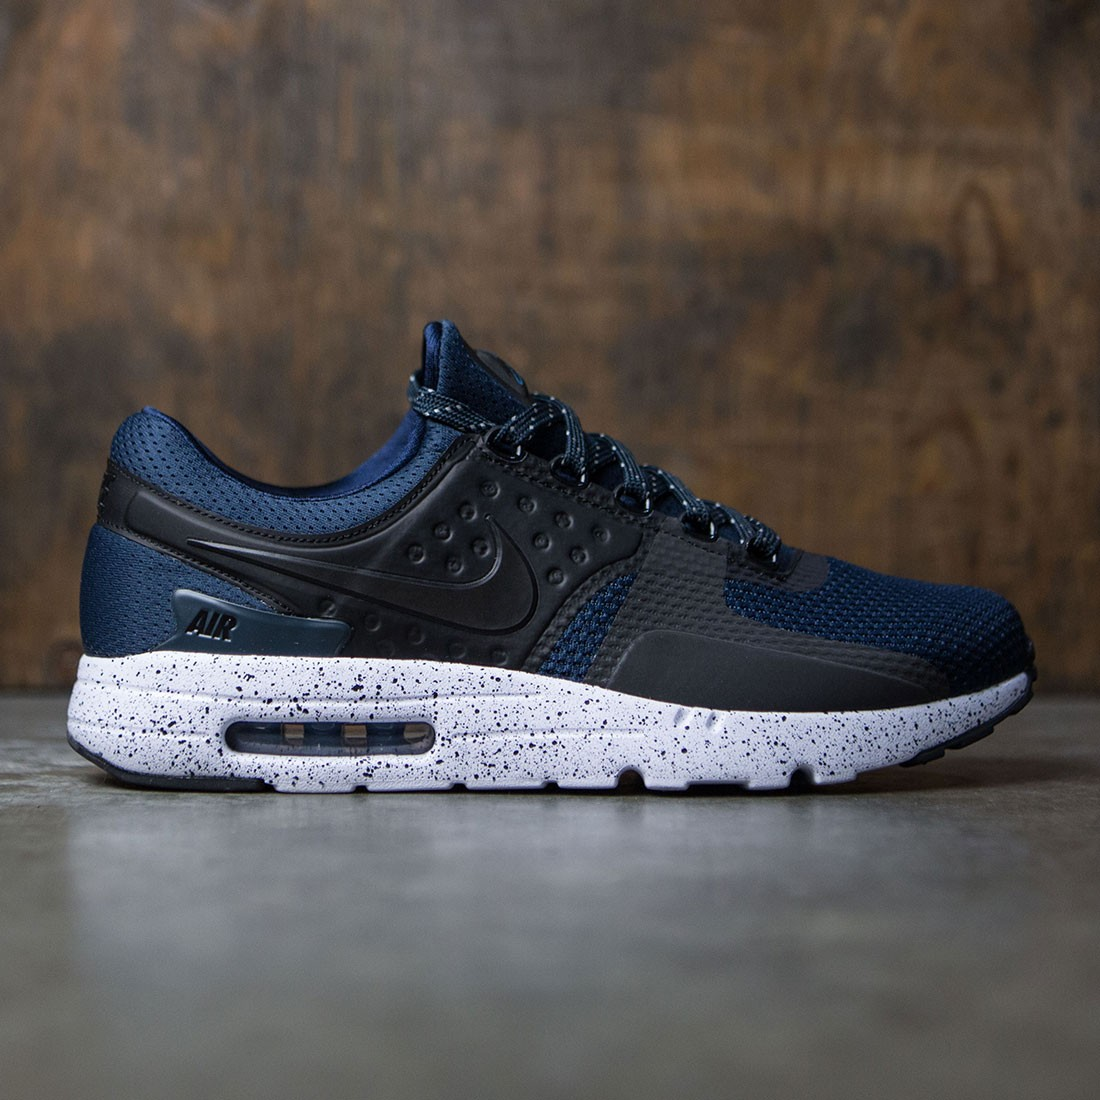 nike men air max zero premium navy armory navy black white industrial blue dca5165012e7